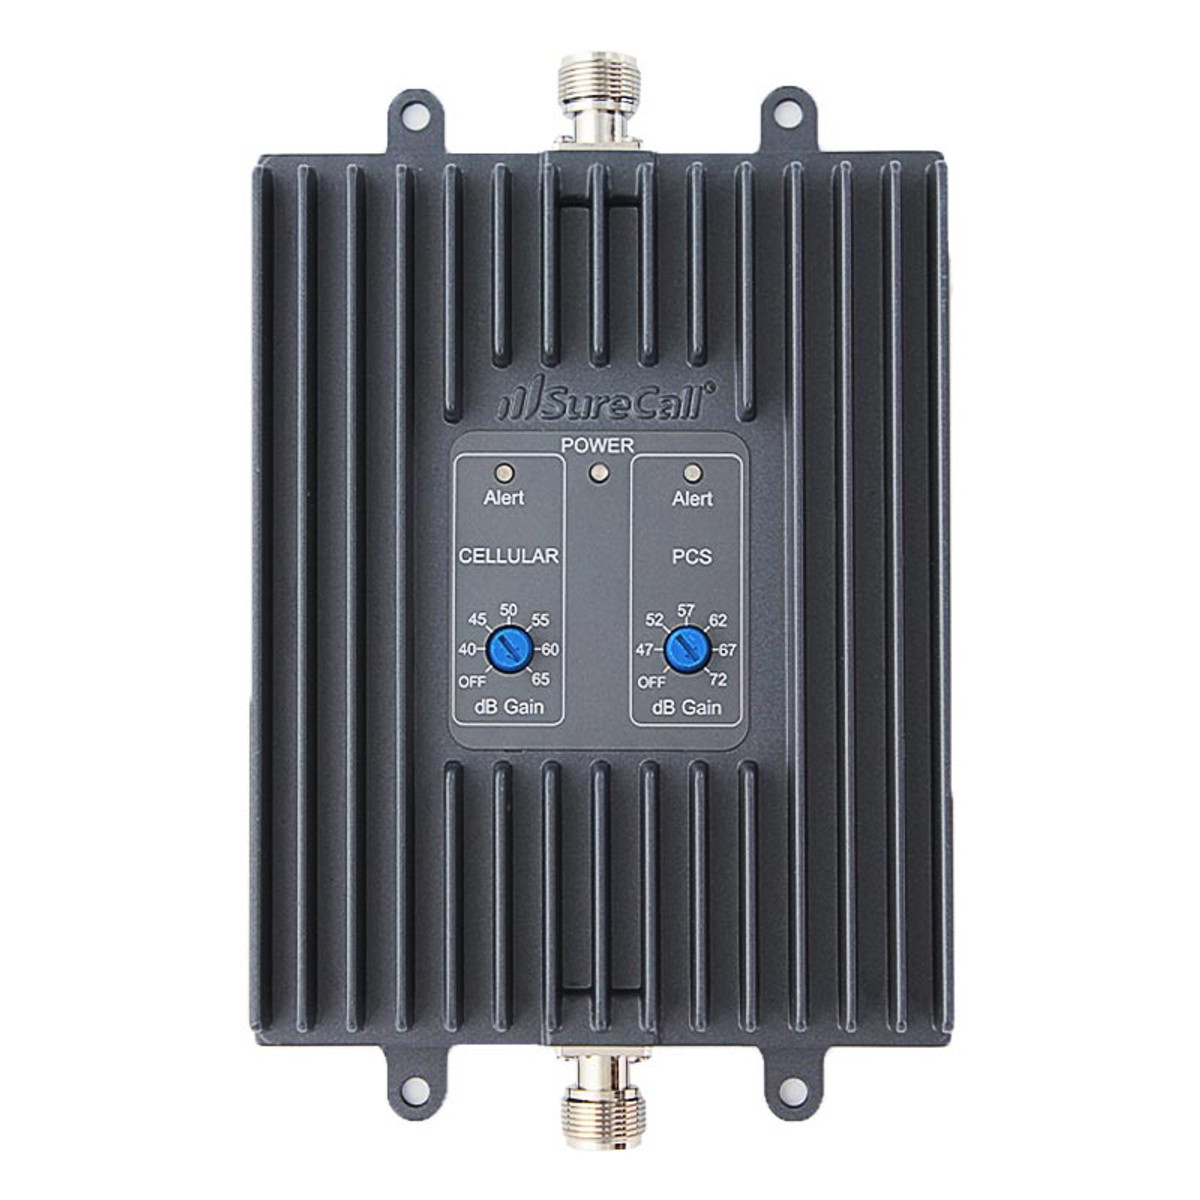 SureCall FlexPro 3G Signal Booster with Omni & Whip Antennas | Amp